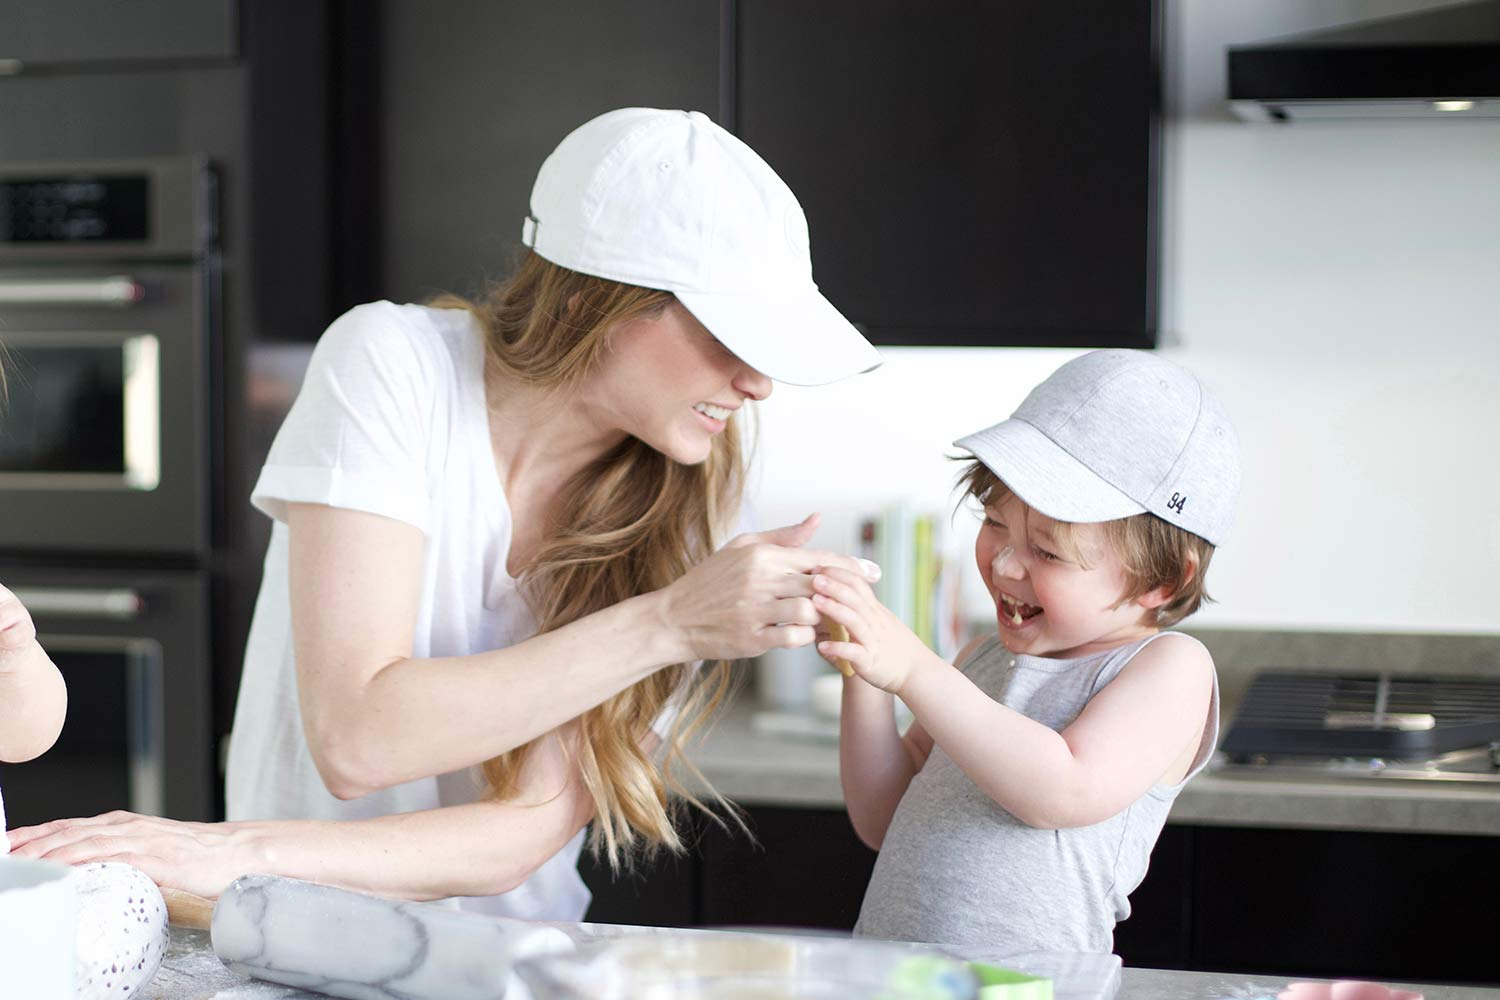 mom and son food fight